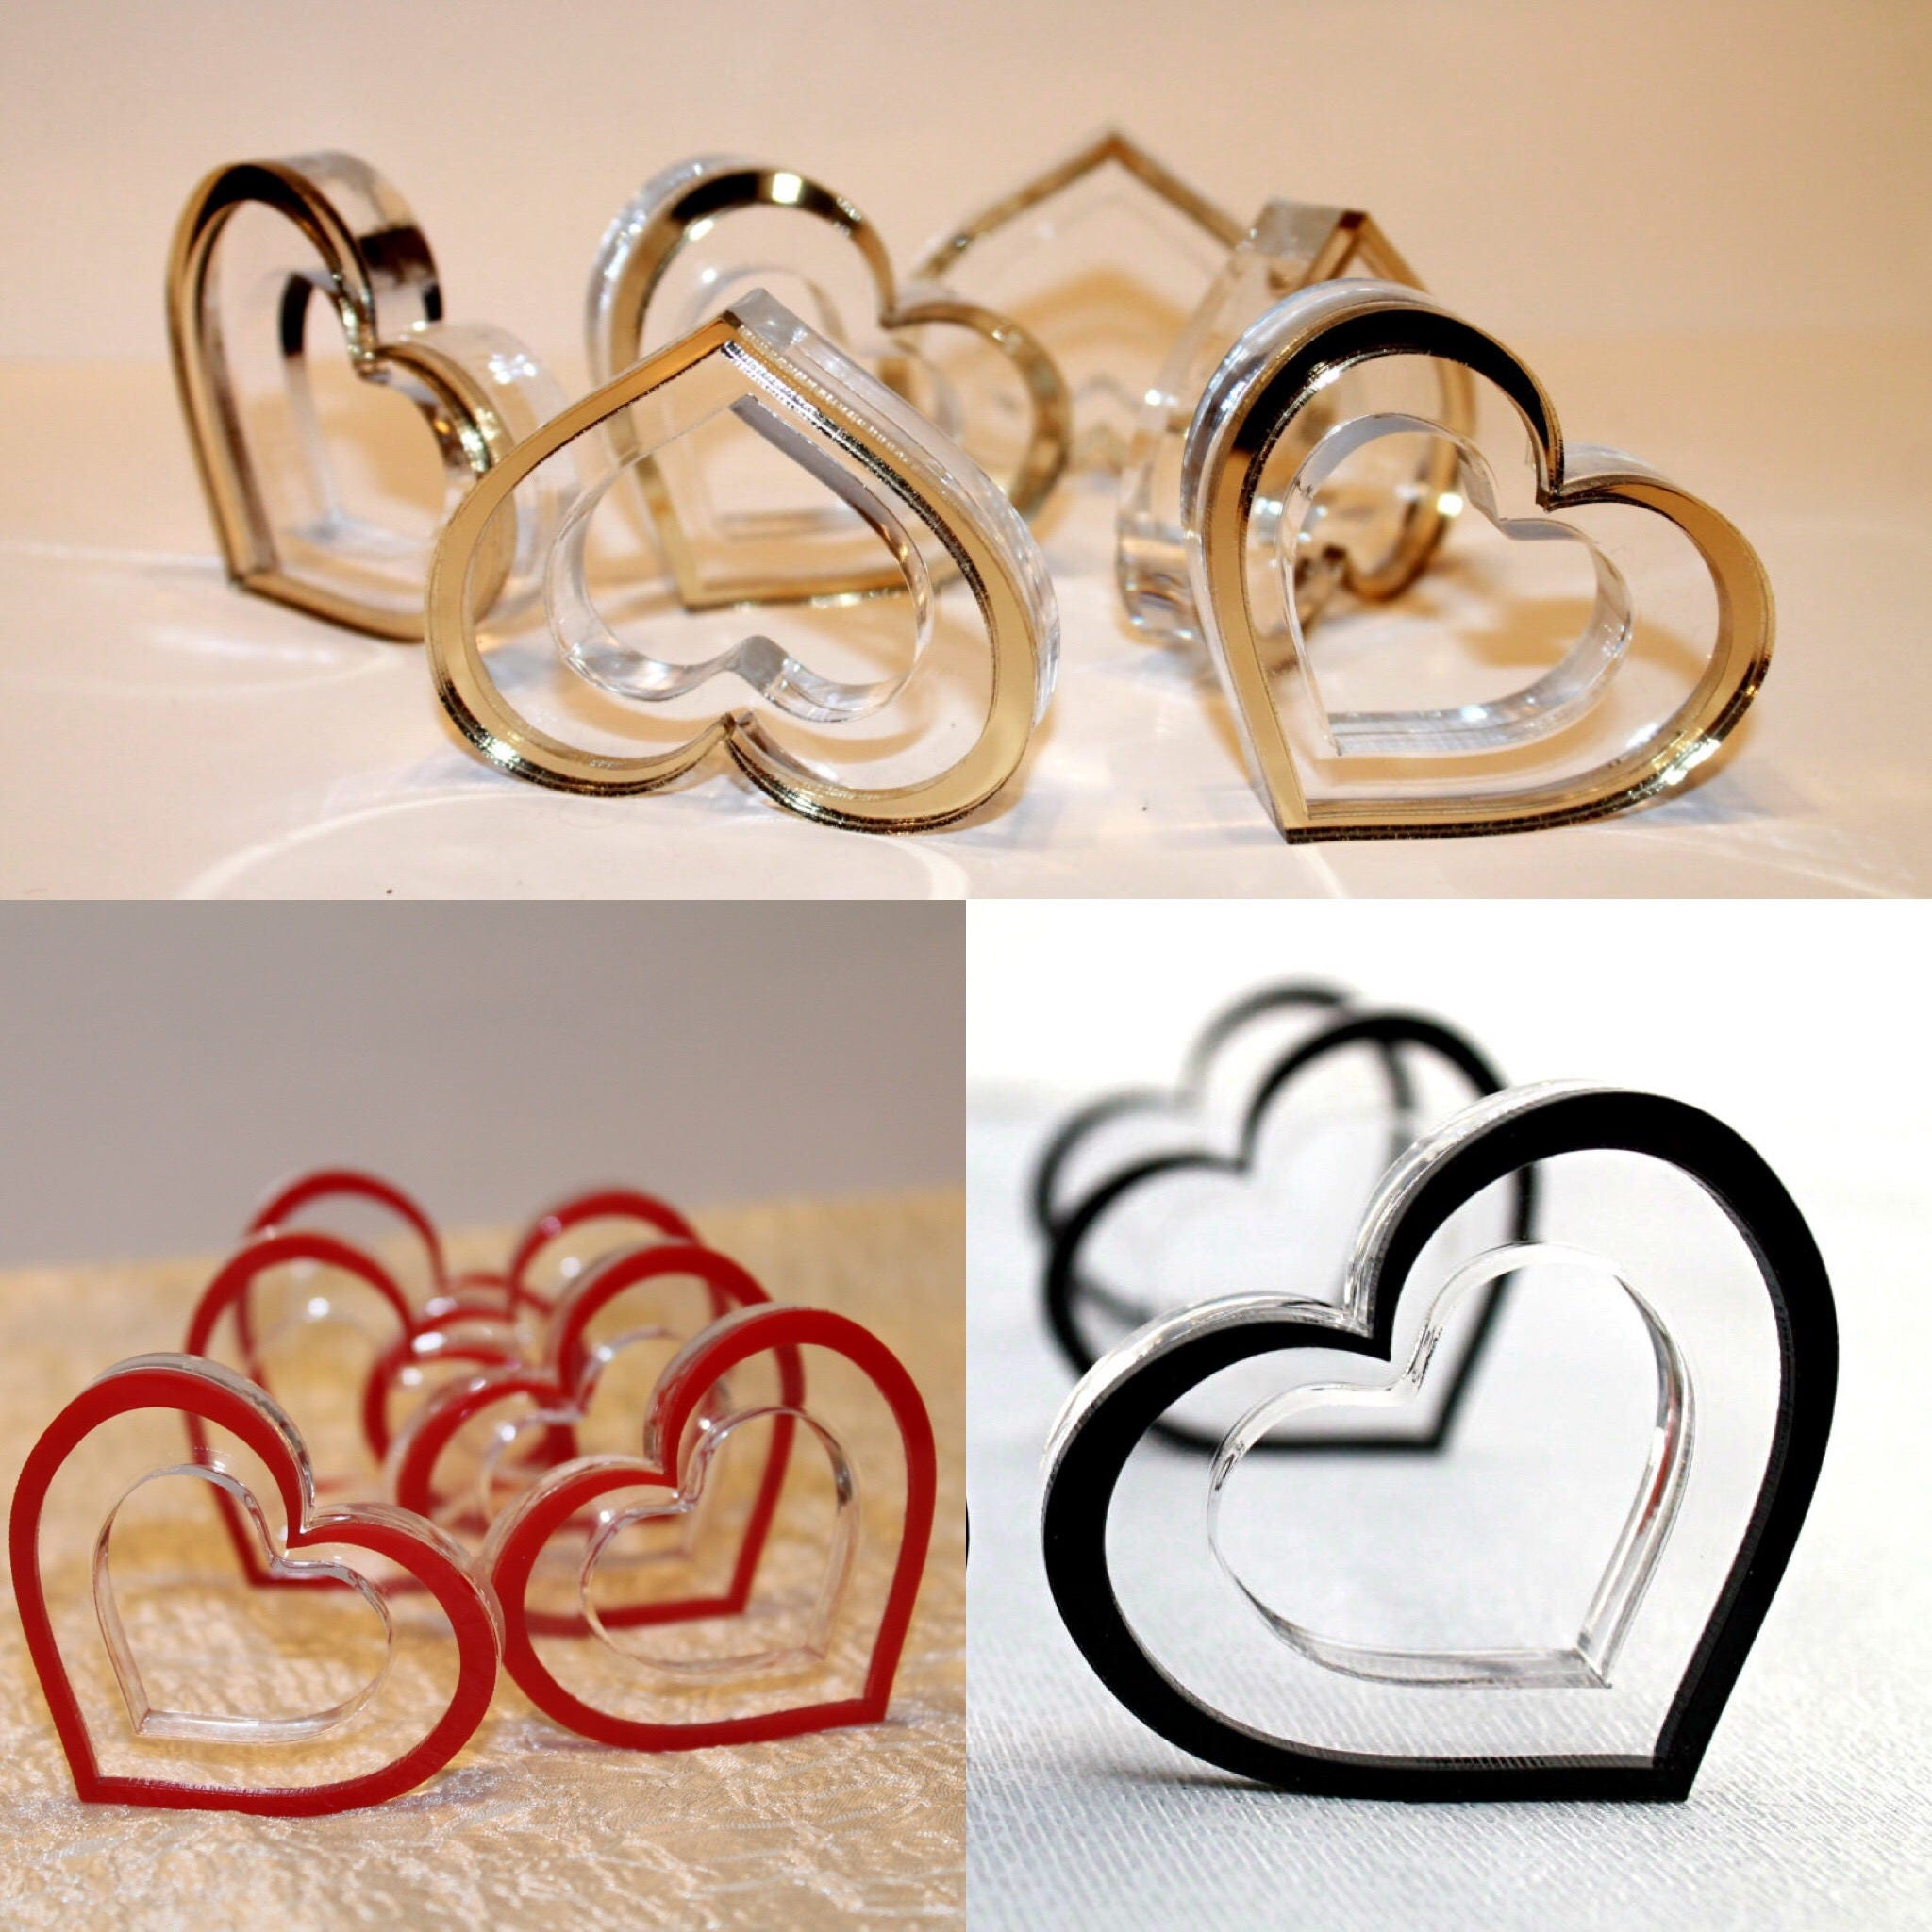 Wedding Napkin Rings Red Gold Hearts Napkin Ring Holders Bridal Shower Table Decor Centerpiece Birthday Party Favors Valentines Day Decor